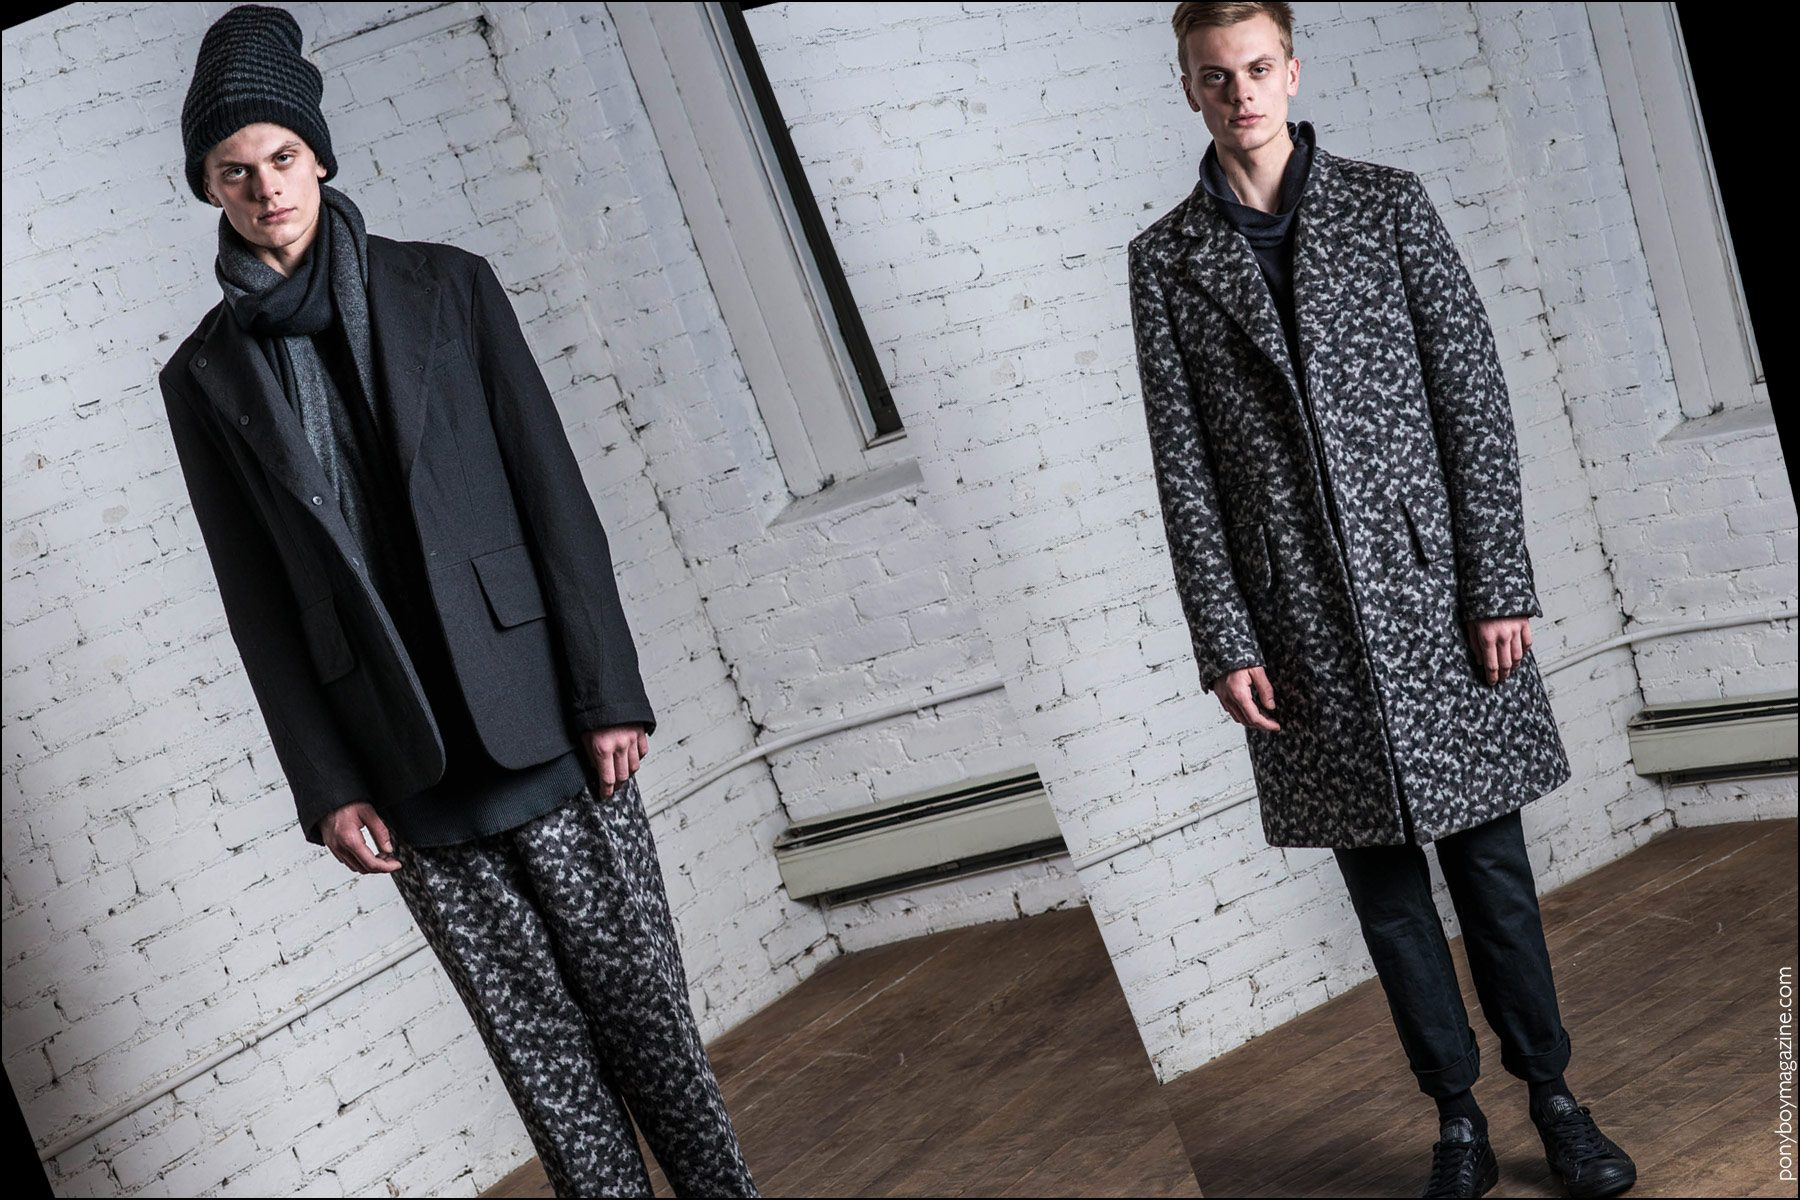 Fingers Crossed Fall 2016 menswear lookbook